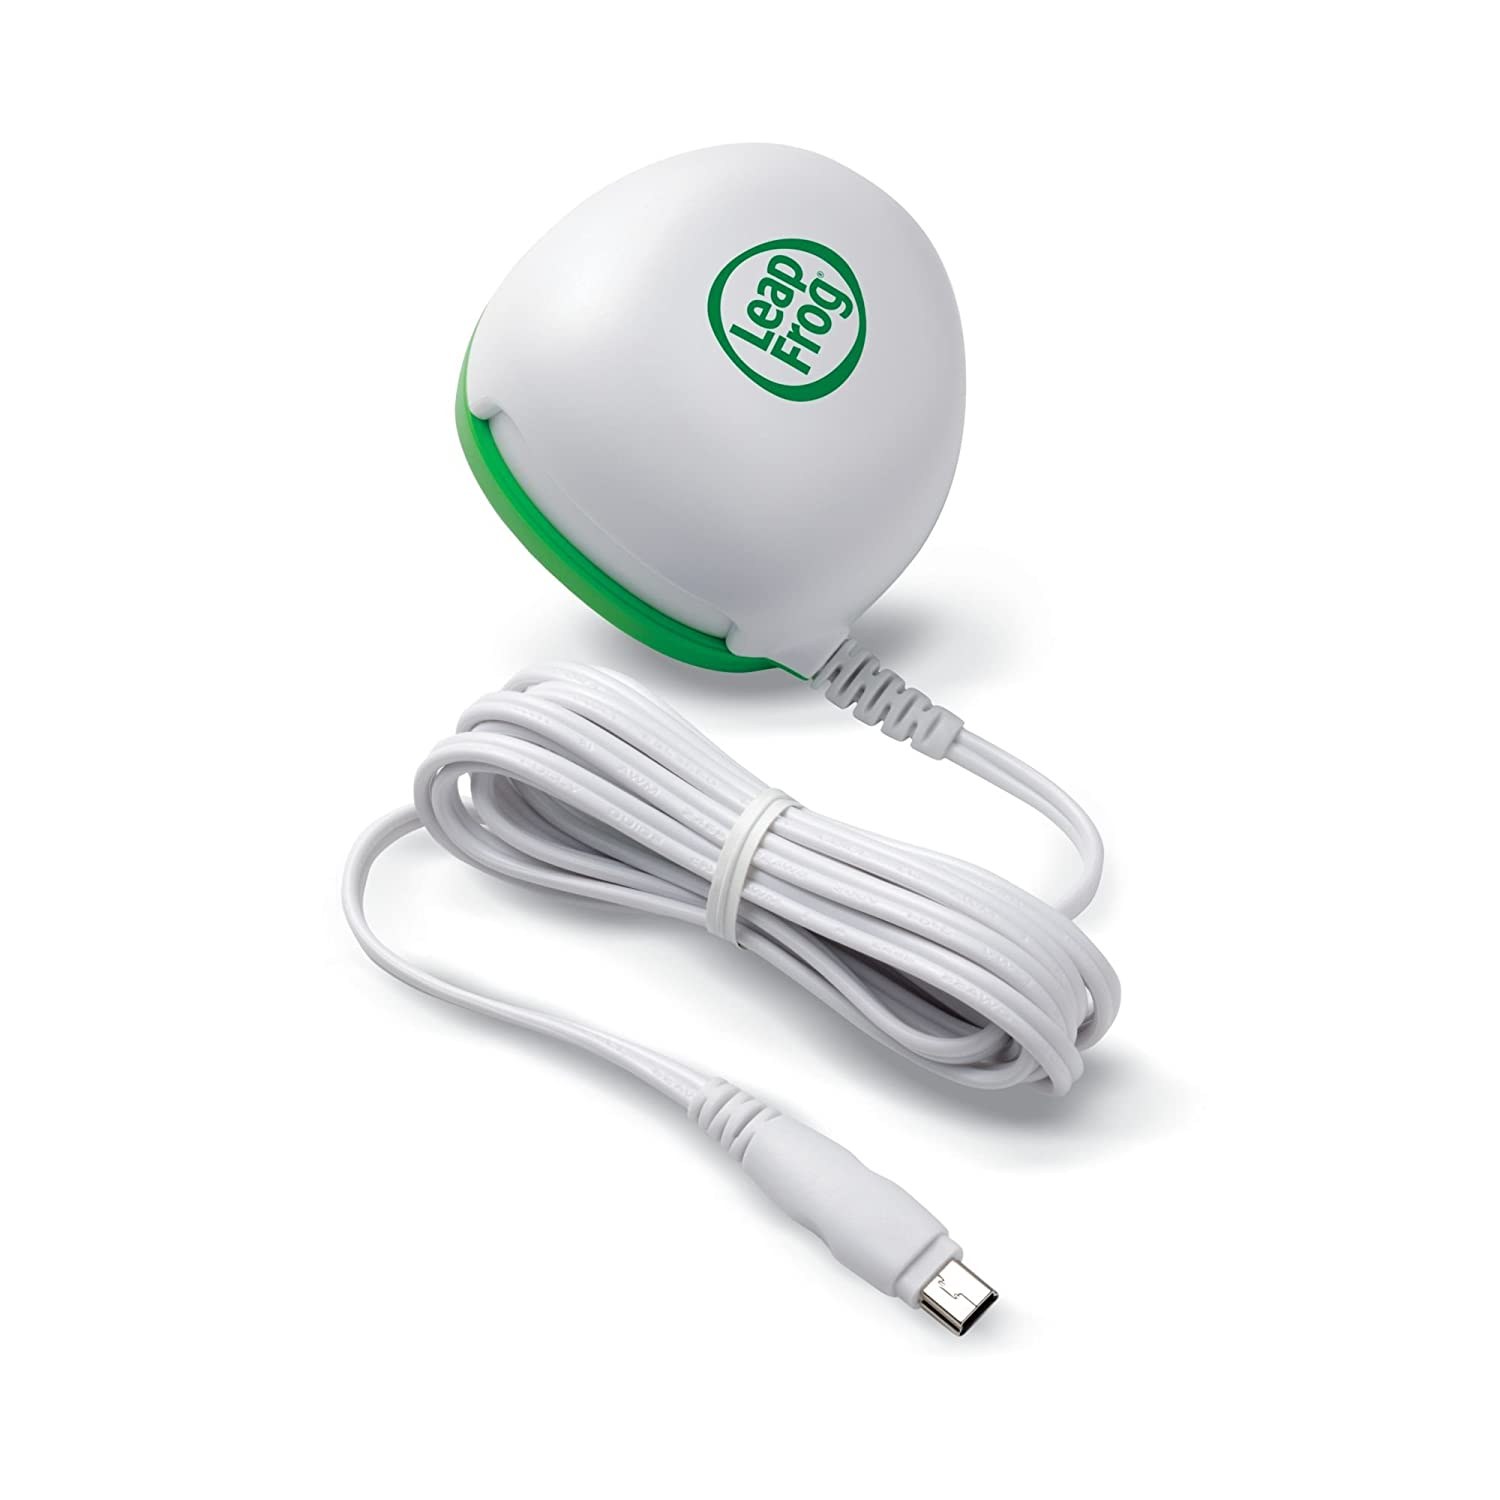 MyVolts 5V USB Power Cable Compatible with Leapfrog LeapReader Learning Tablet